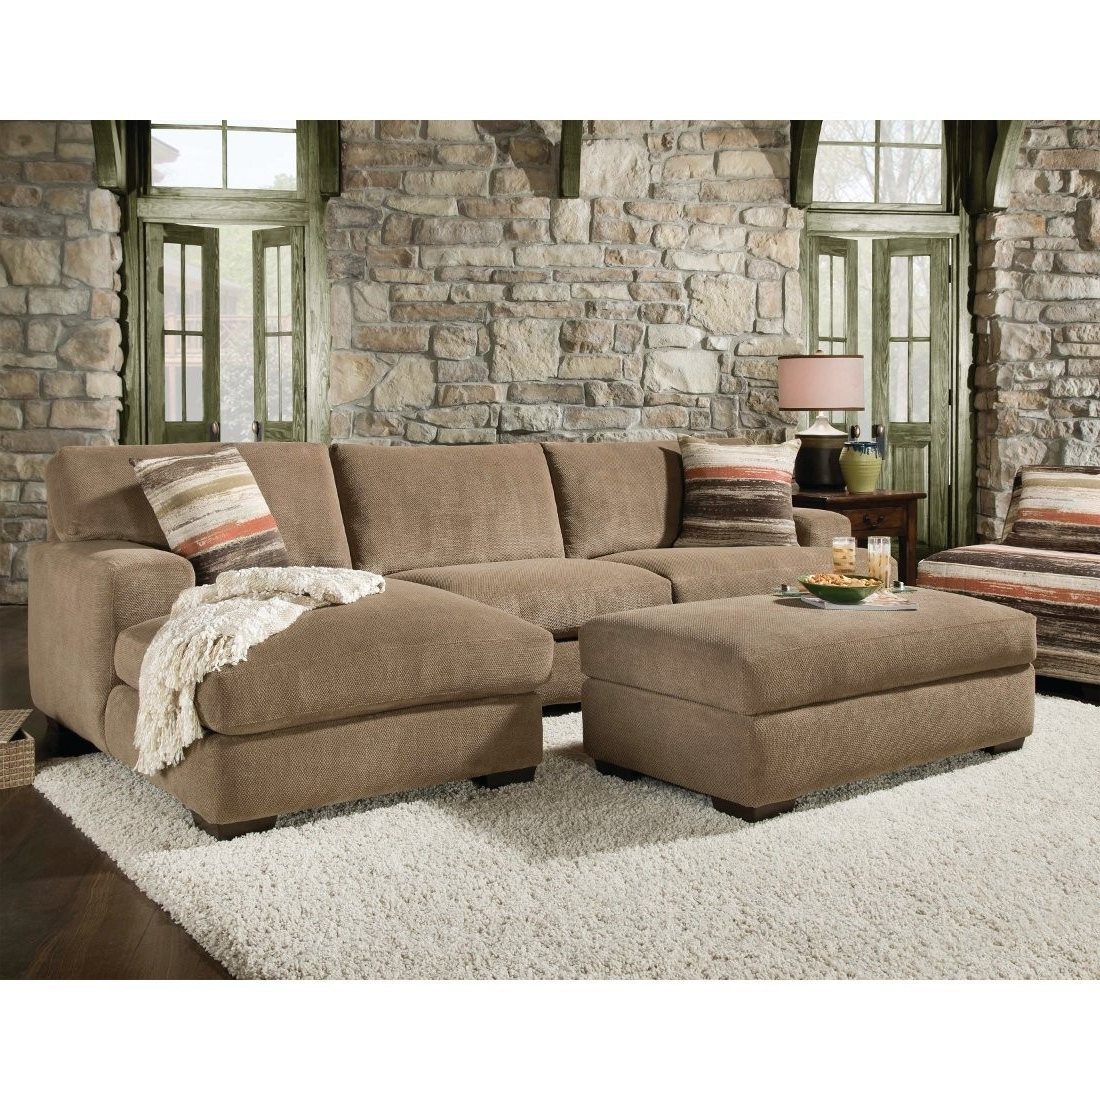 Preferred Beautiful Sectional Sofa With Chaise And Ottoman Pictures For Sectional Sofas With Chaise Lounge And Ottoman (View 7 of 15)